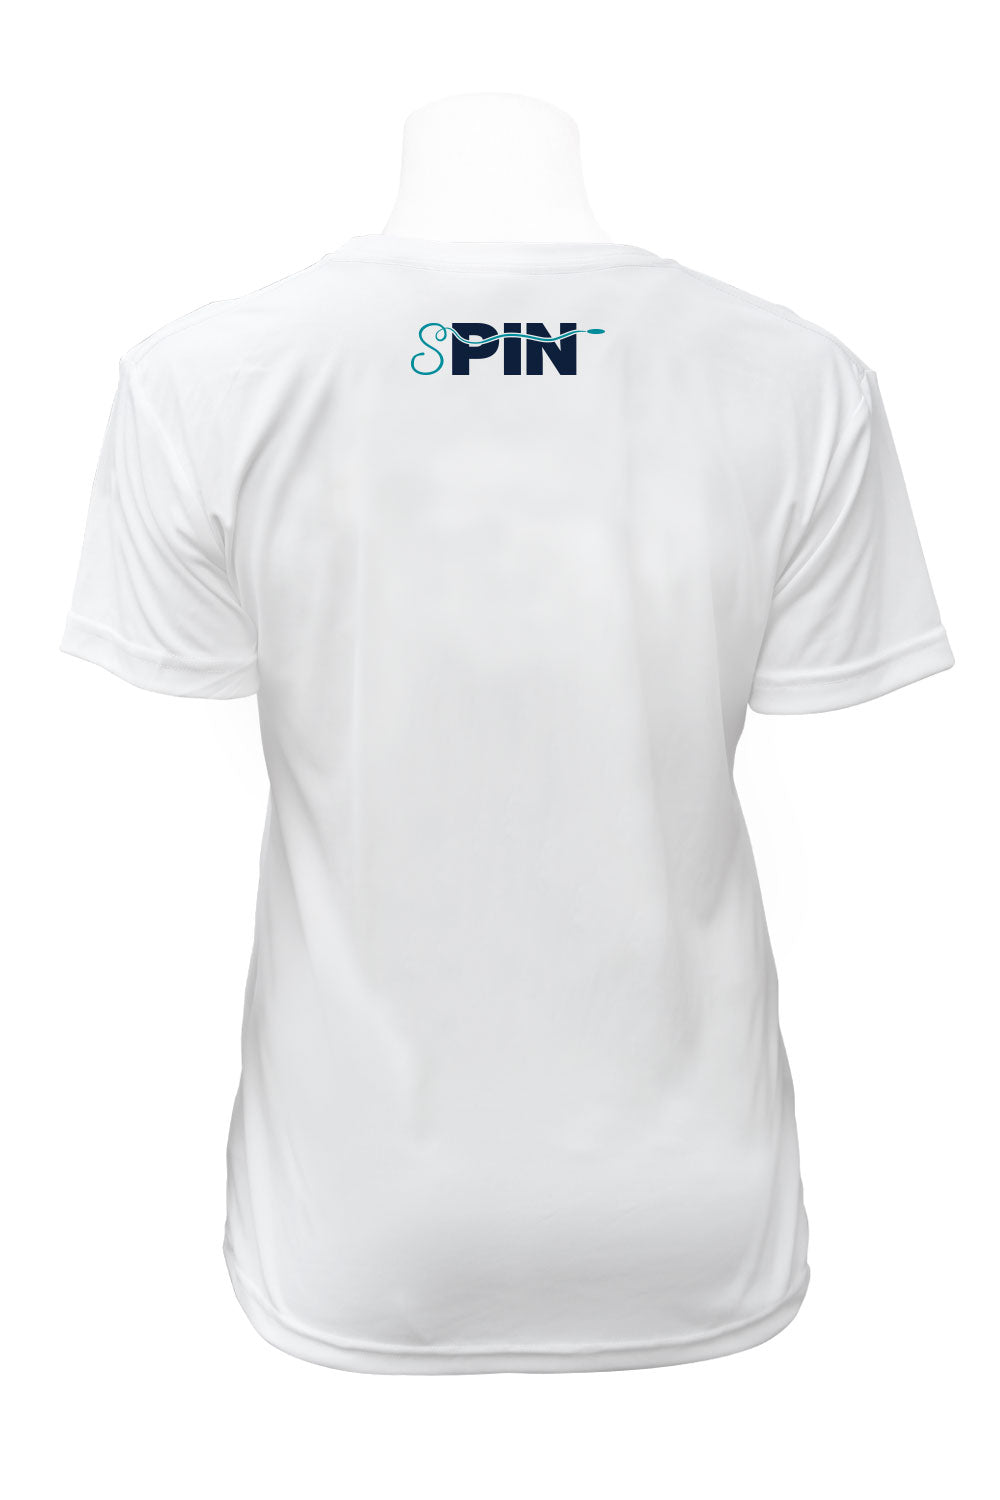 GUM White Short Sleeve Jersey (Navy/Teal)